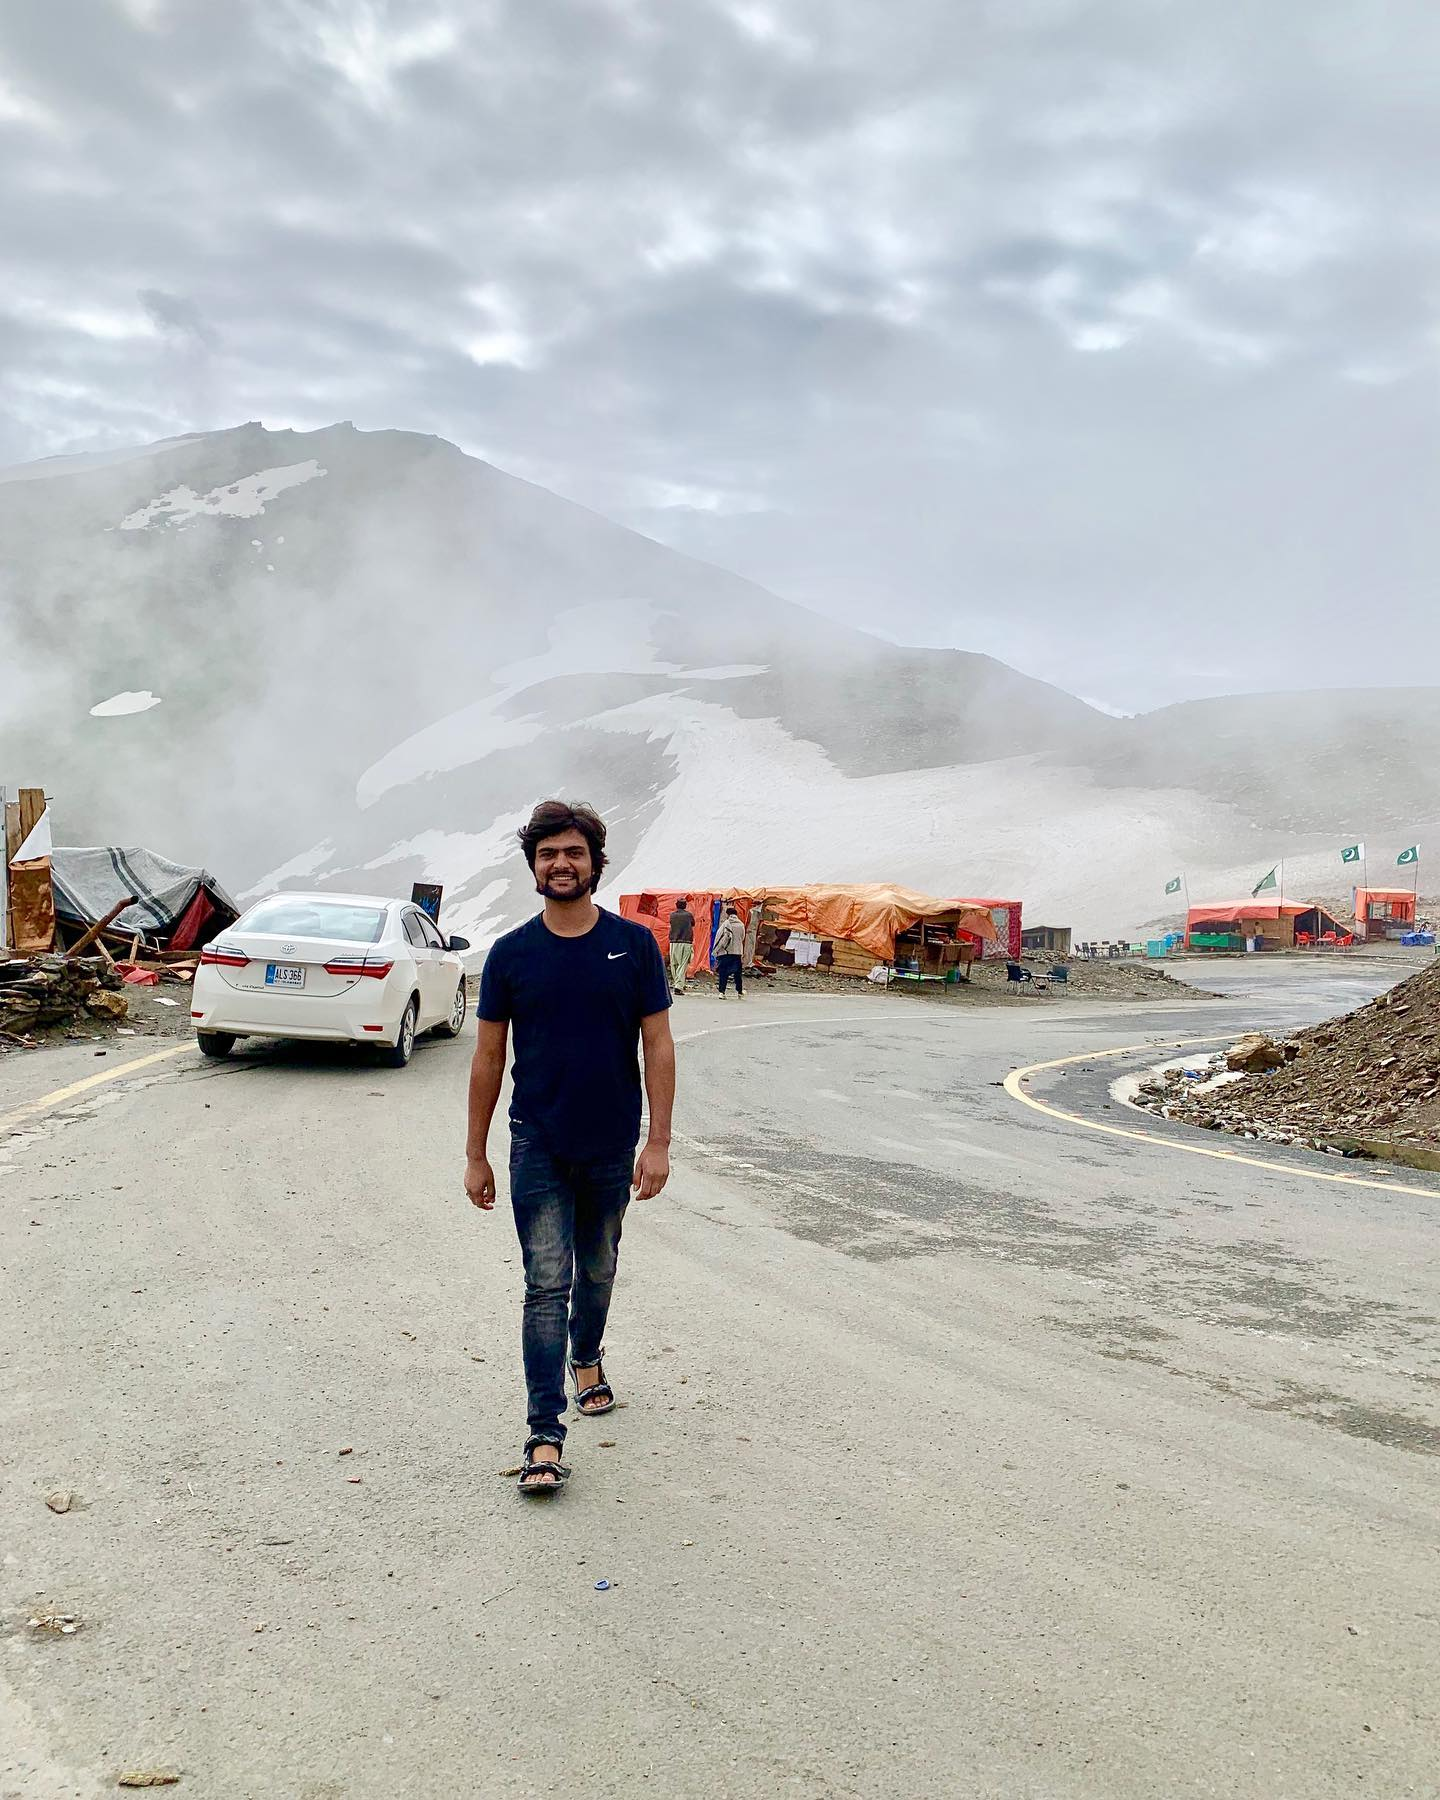 Kach Solo Travels in 2019 This is Pakistan My country 11.jpg